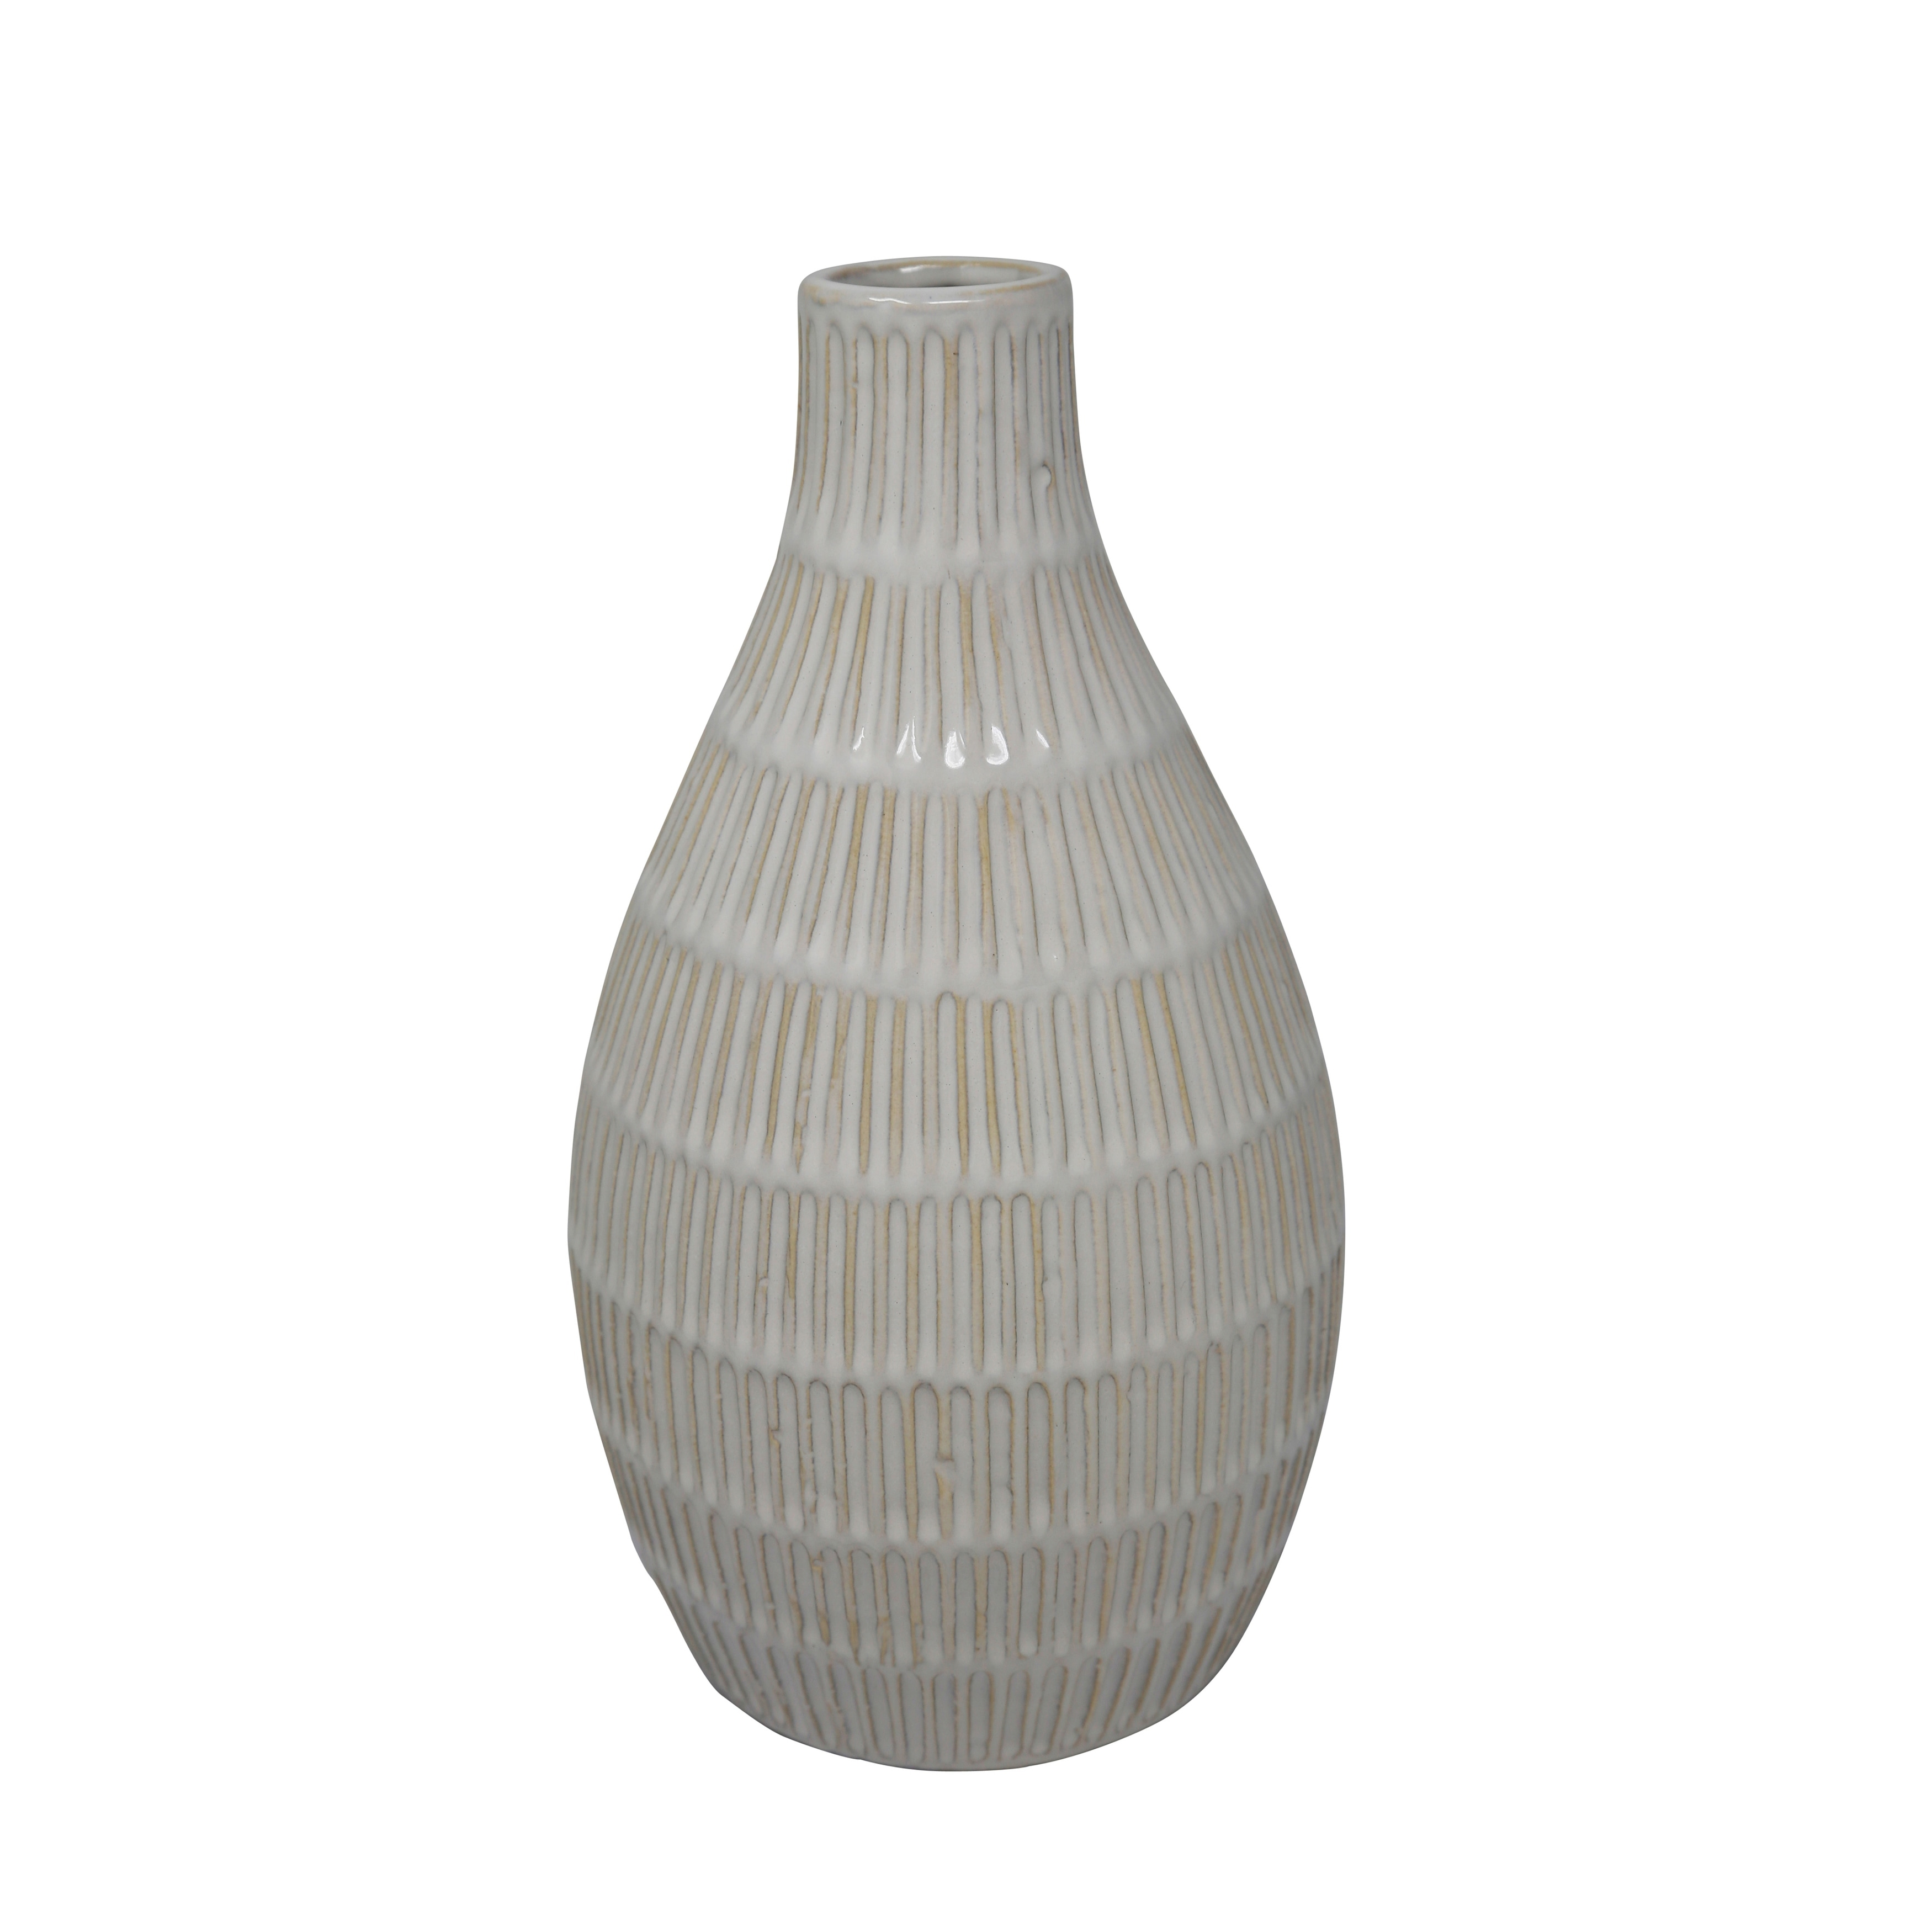 Ceramic Bottle Vase with Embossed Design Pattern, White and Brown